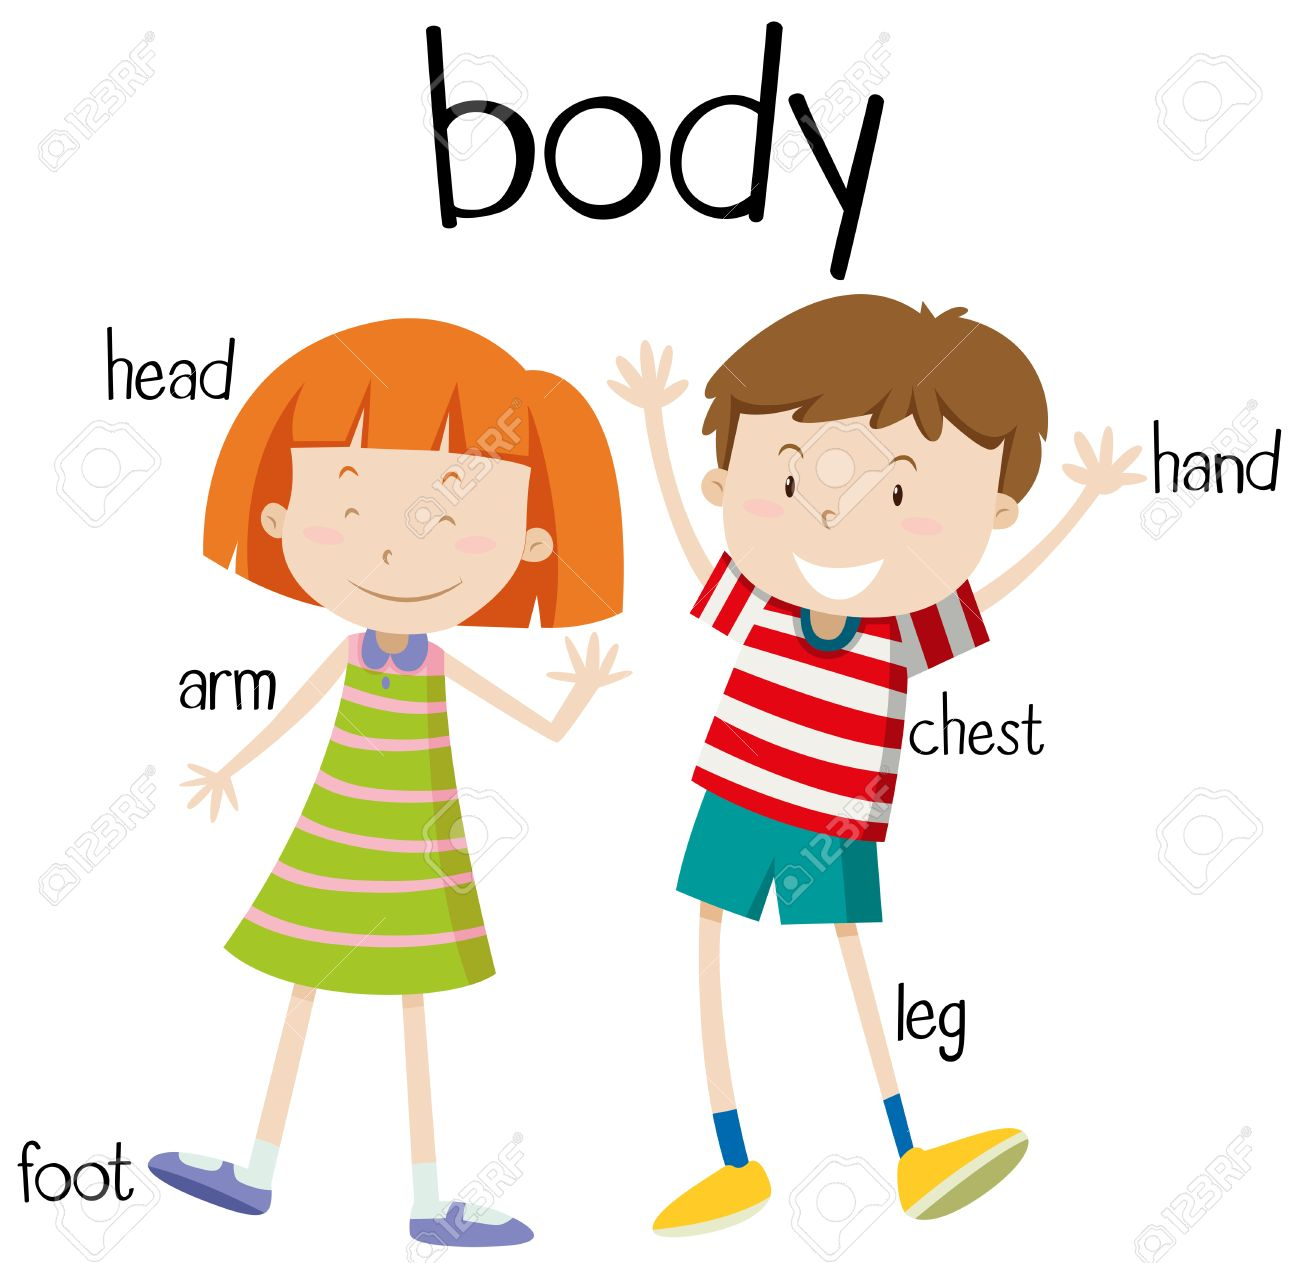 Clipart of the body graphic Clipart Of Human Body Part Human Body Parts Diagram Illustration ... graphic